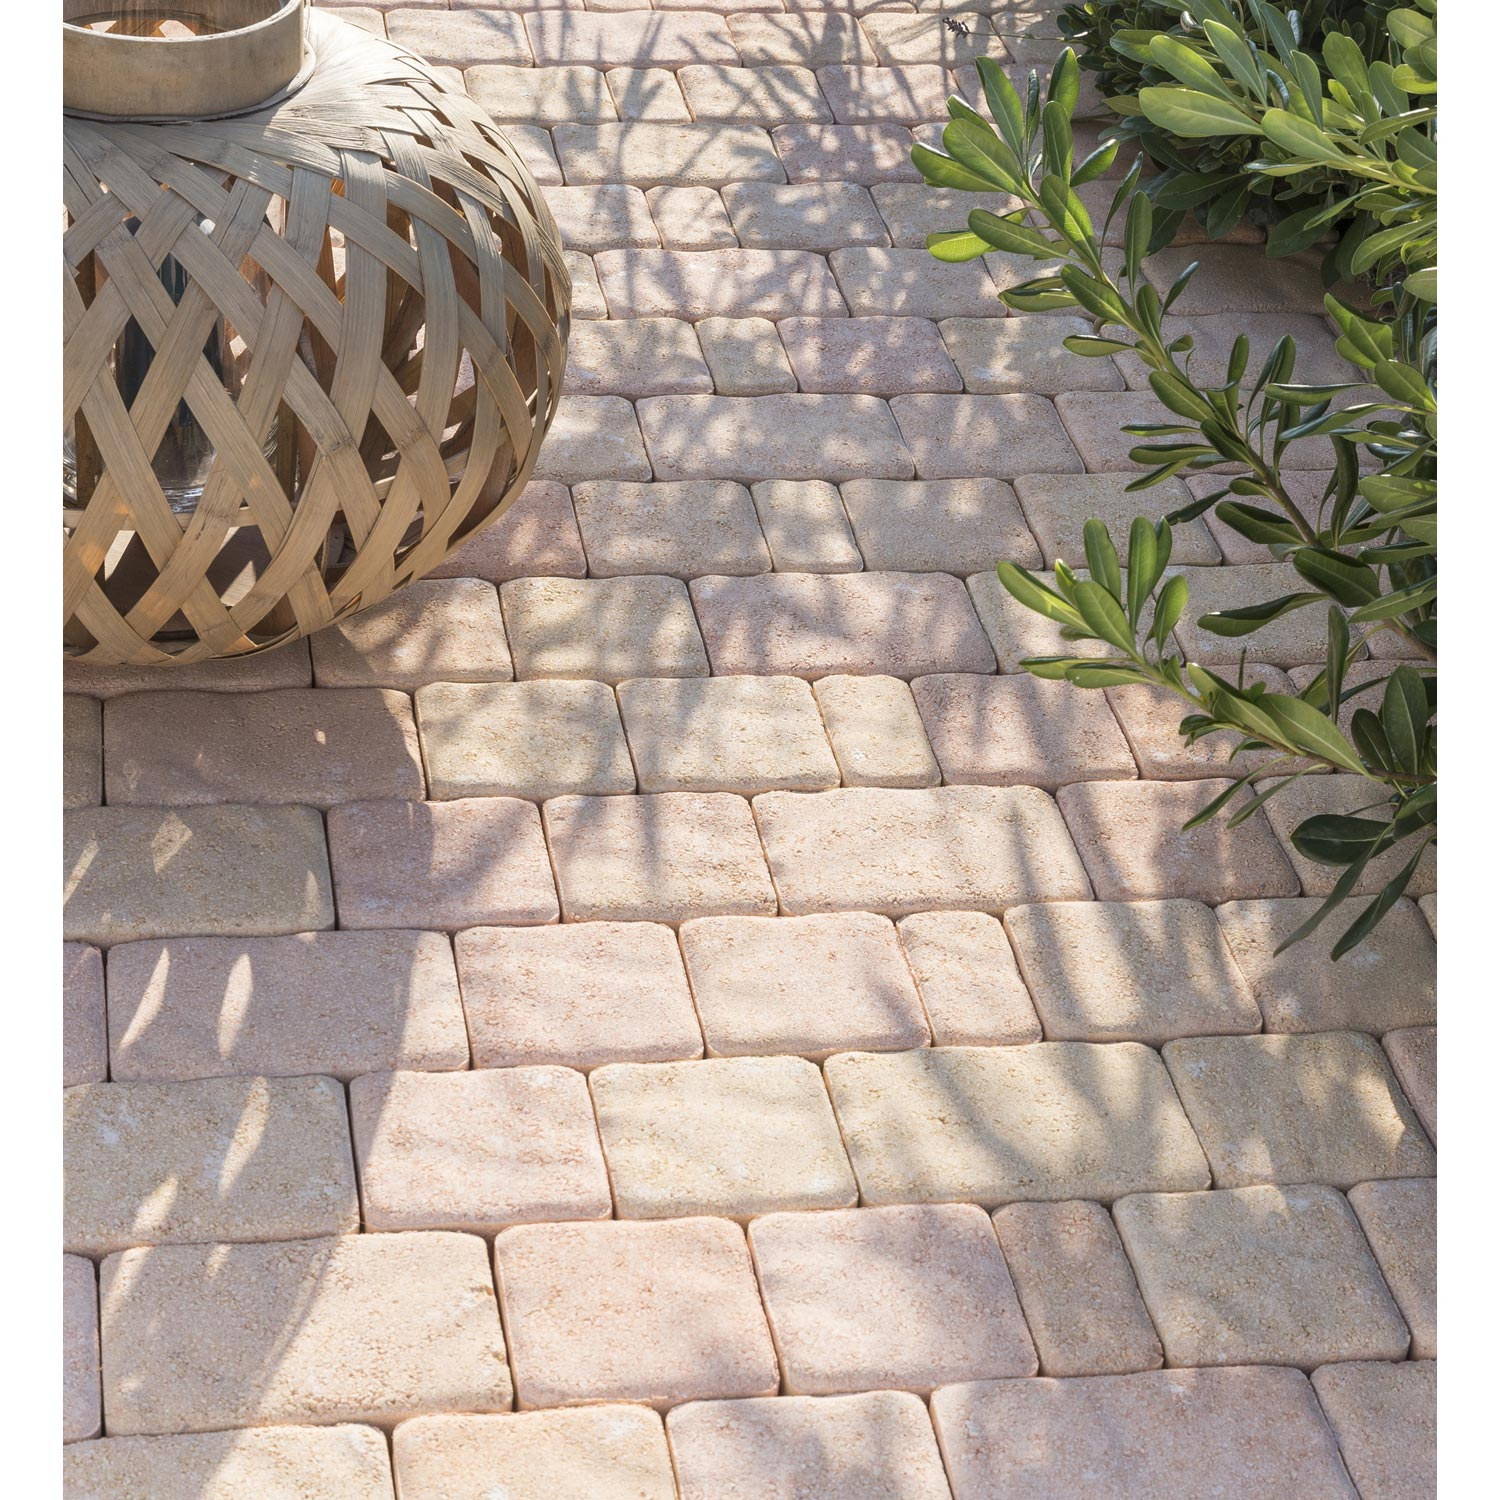 Pave Beton Antique Multiformat Flamme 12x6 12x12 18x12 X Ep